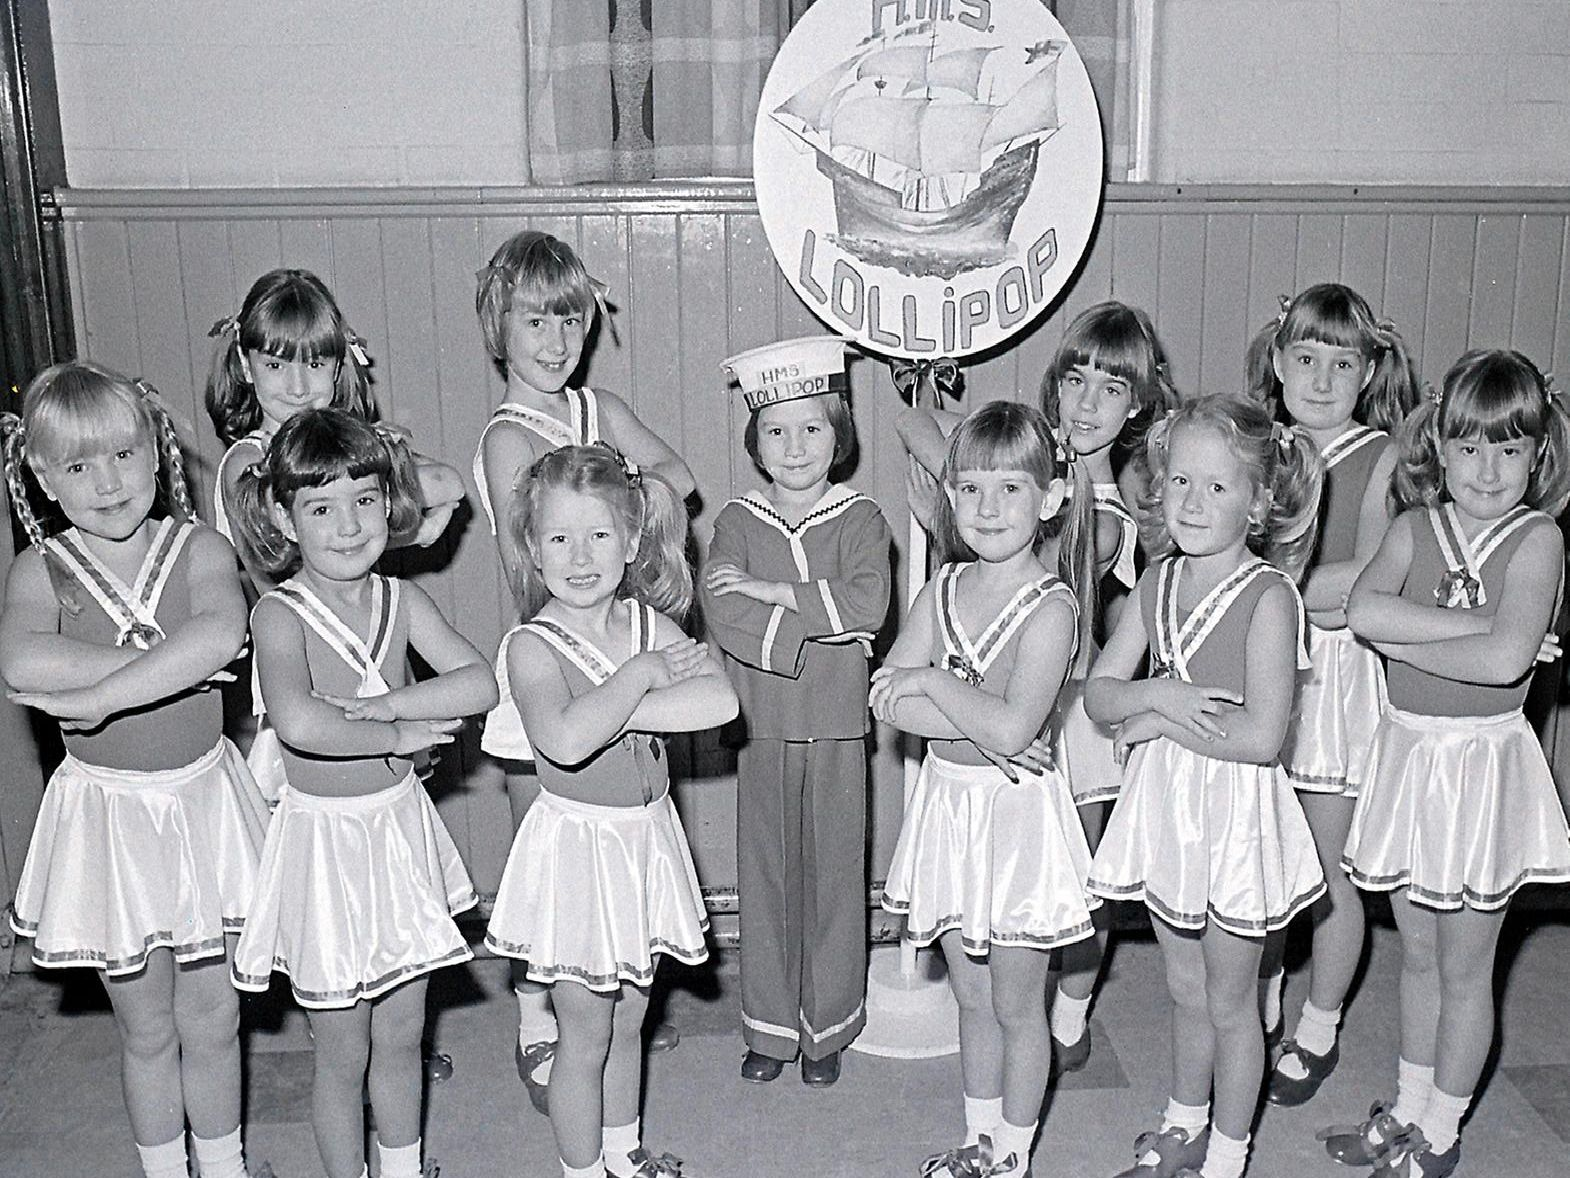 1981: A fabulous group shot taken at Edwinstowes Antoinette School of Dancing show. Did you take part in this?